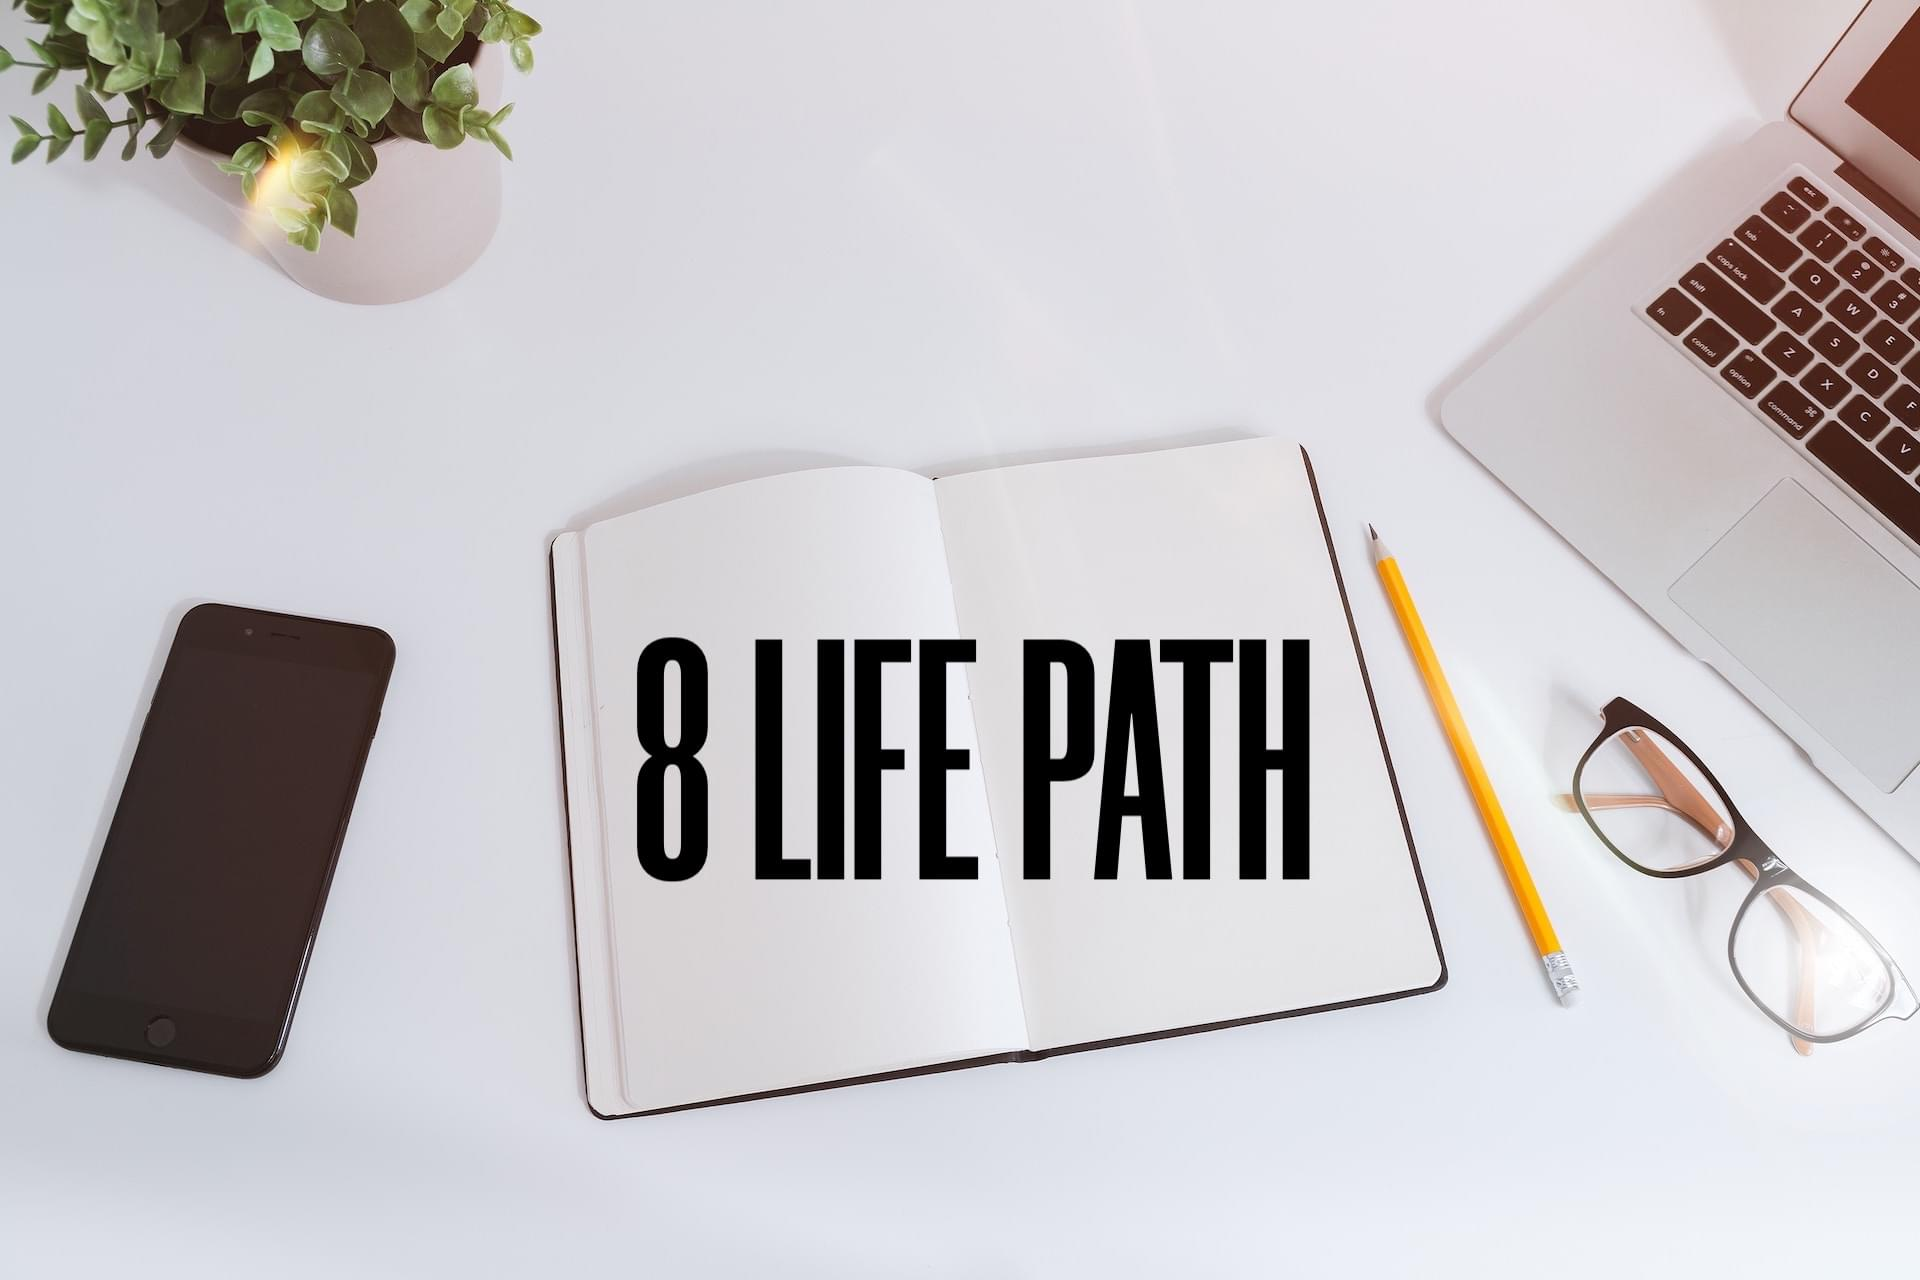 hight resolution of 8 life path the powerhouse felicia